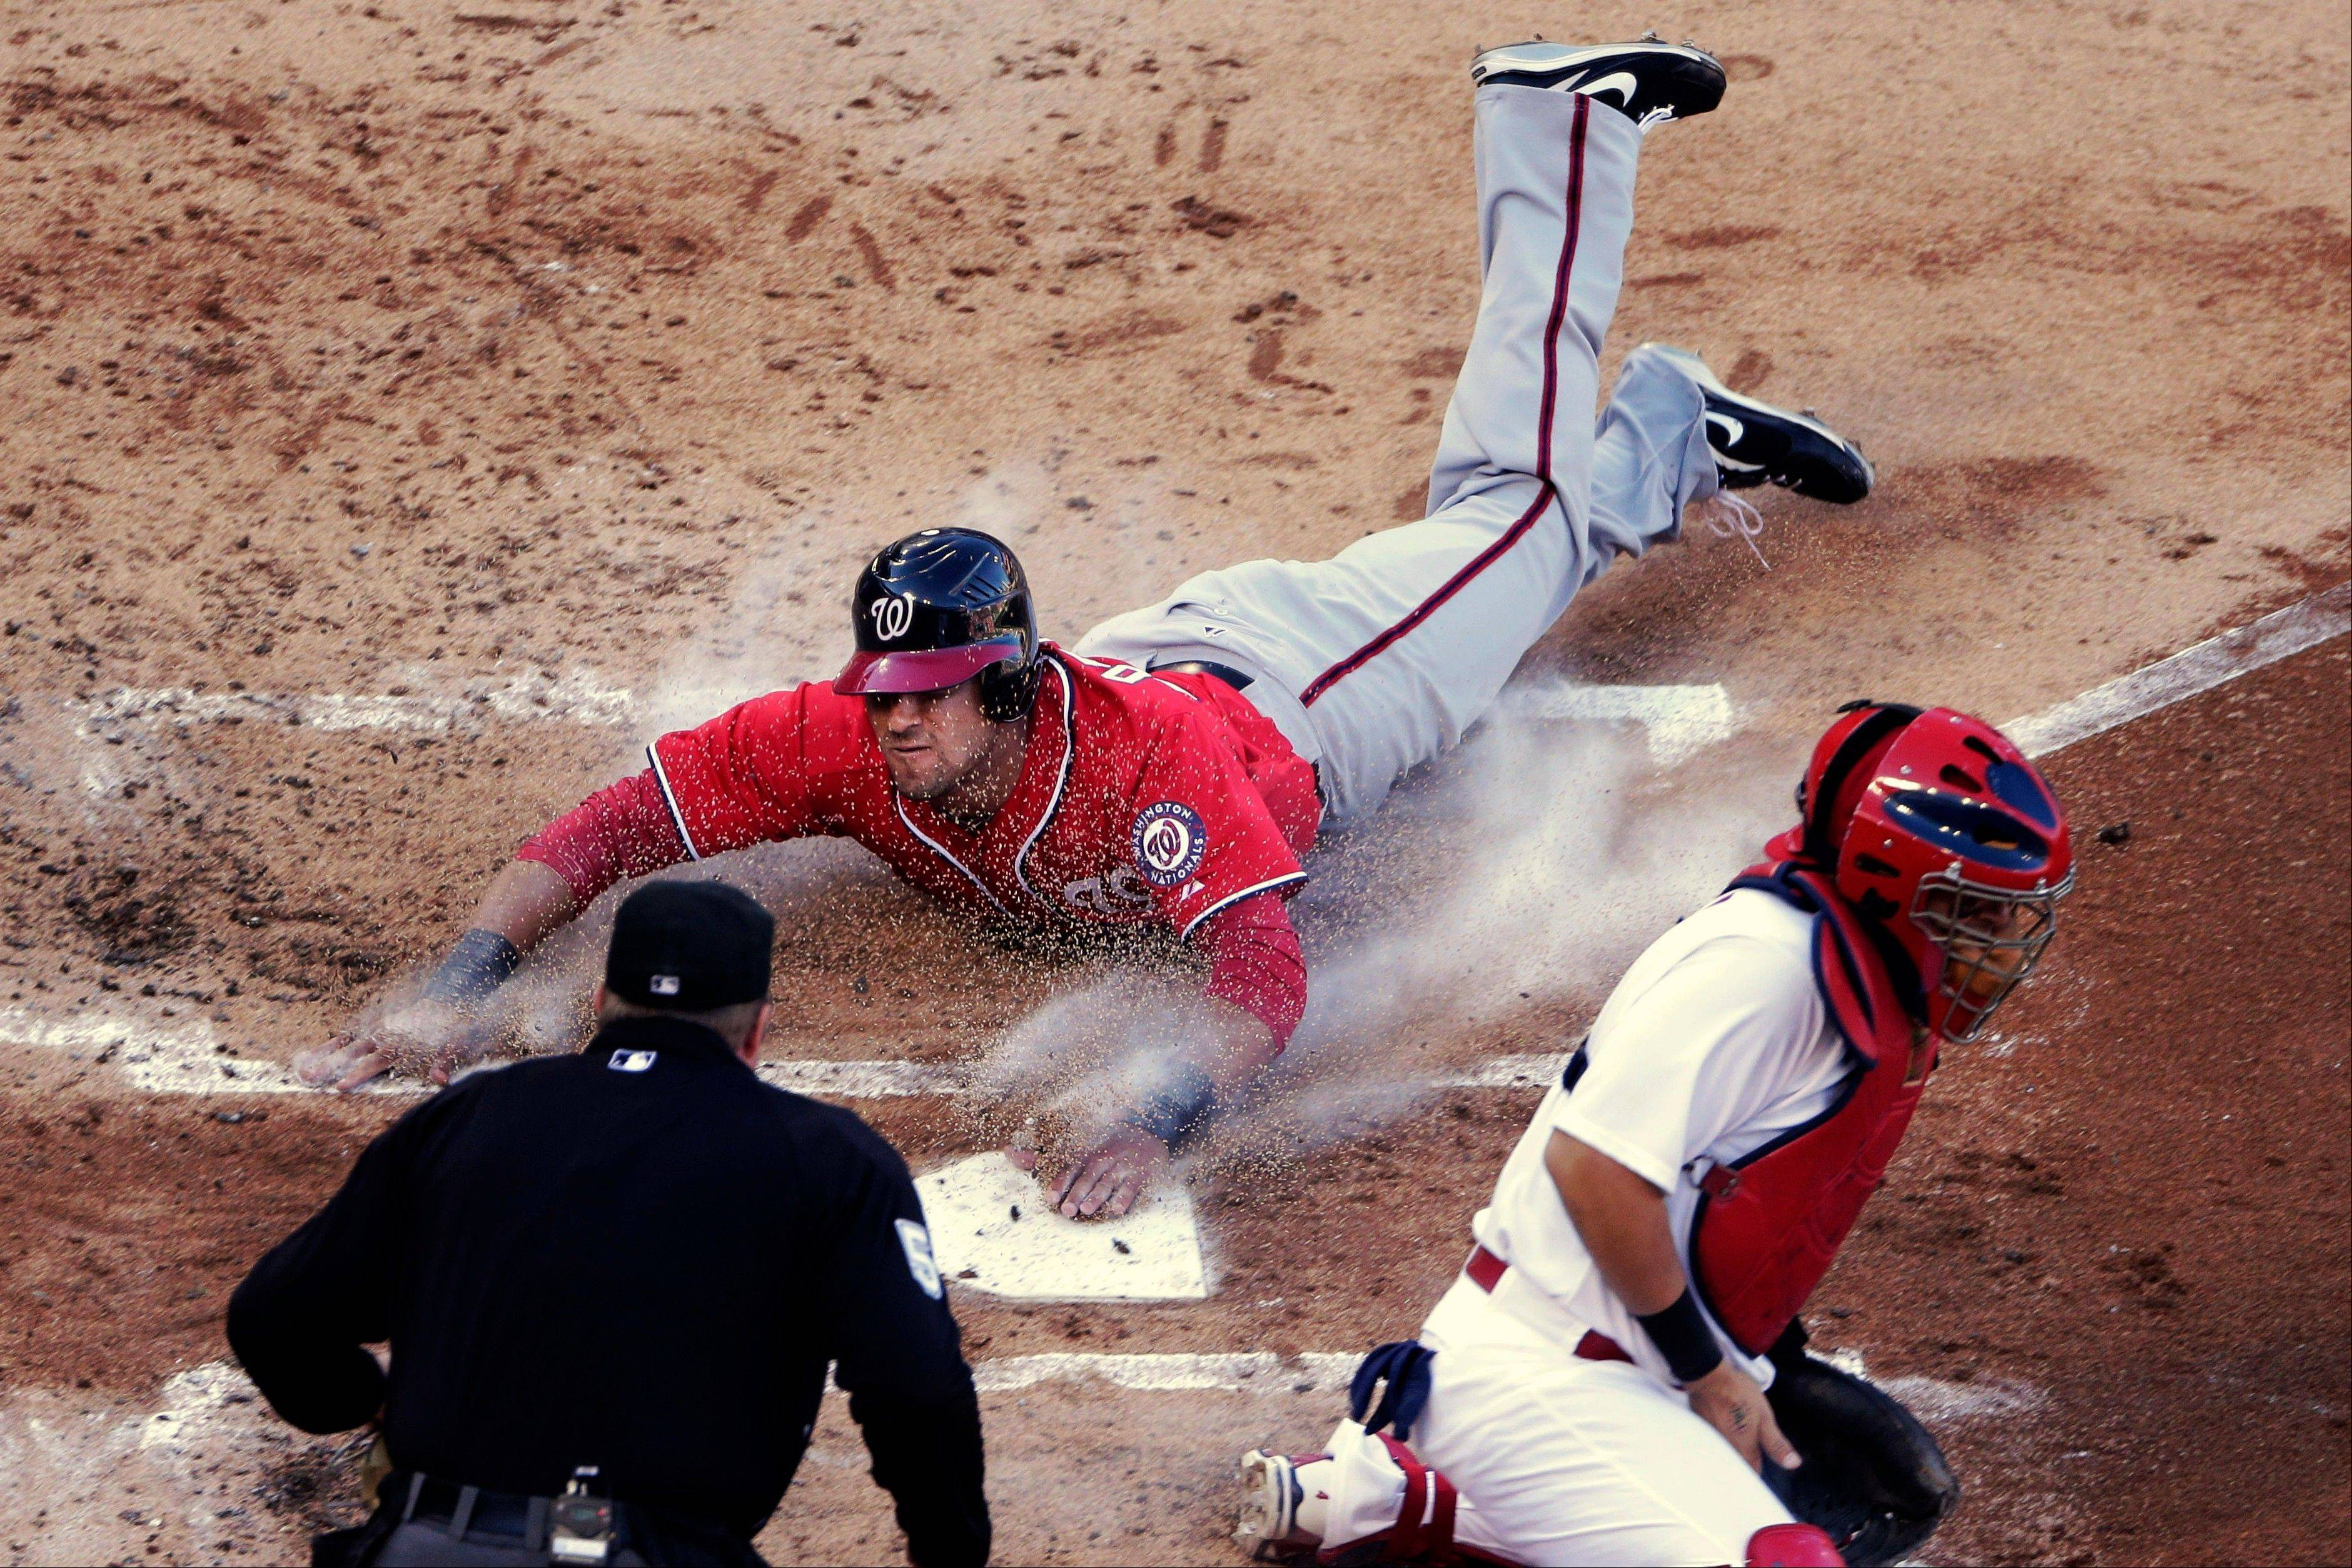 Washington Nationals� Ian Desmond, top, slides home past St. Louis Cardinals catcher Yadier Molina, bottom right, to score on a single by Jordan Zimmermann during the second inning of Game 2 of the National League division baseball series, Monday, Oct. 8, 2012, in St. Louis.